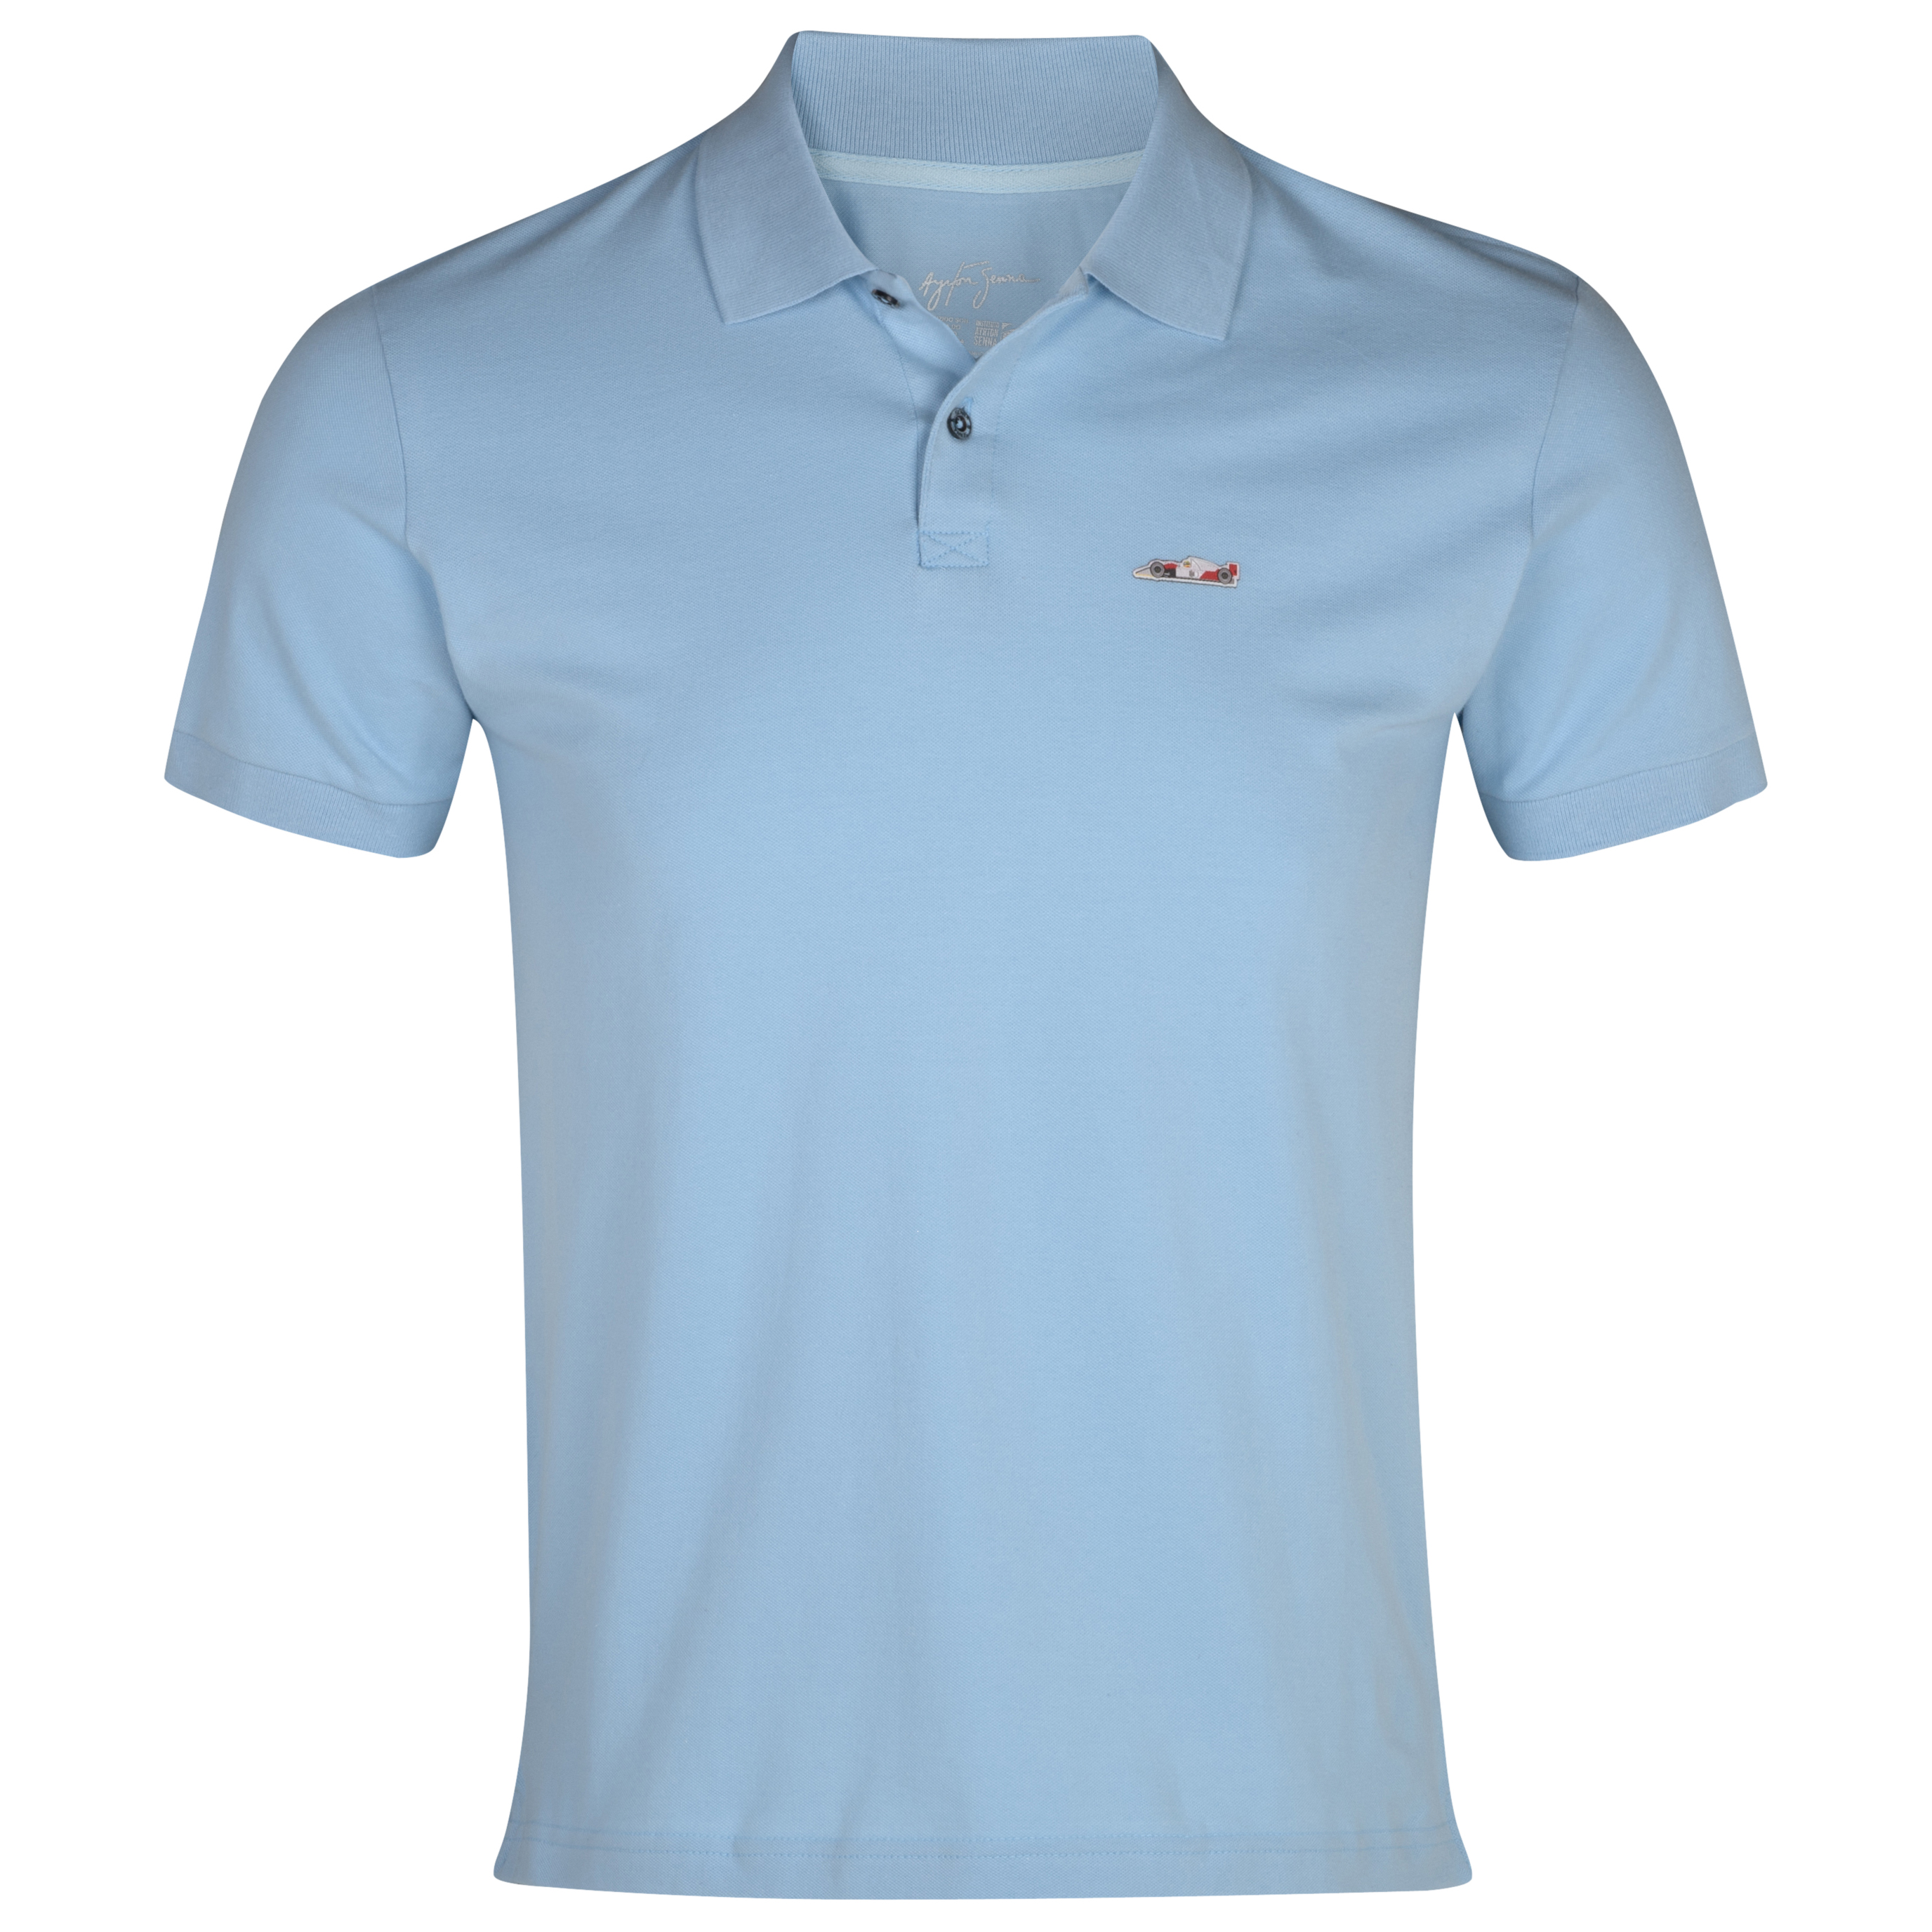 Ayrton Senna McLaren Polo - Blue